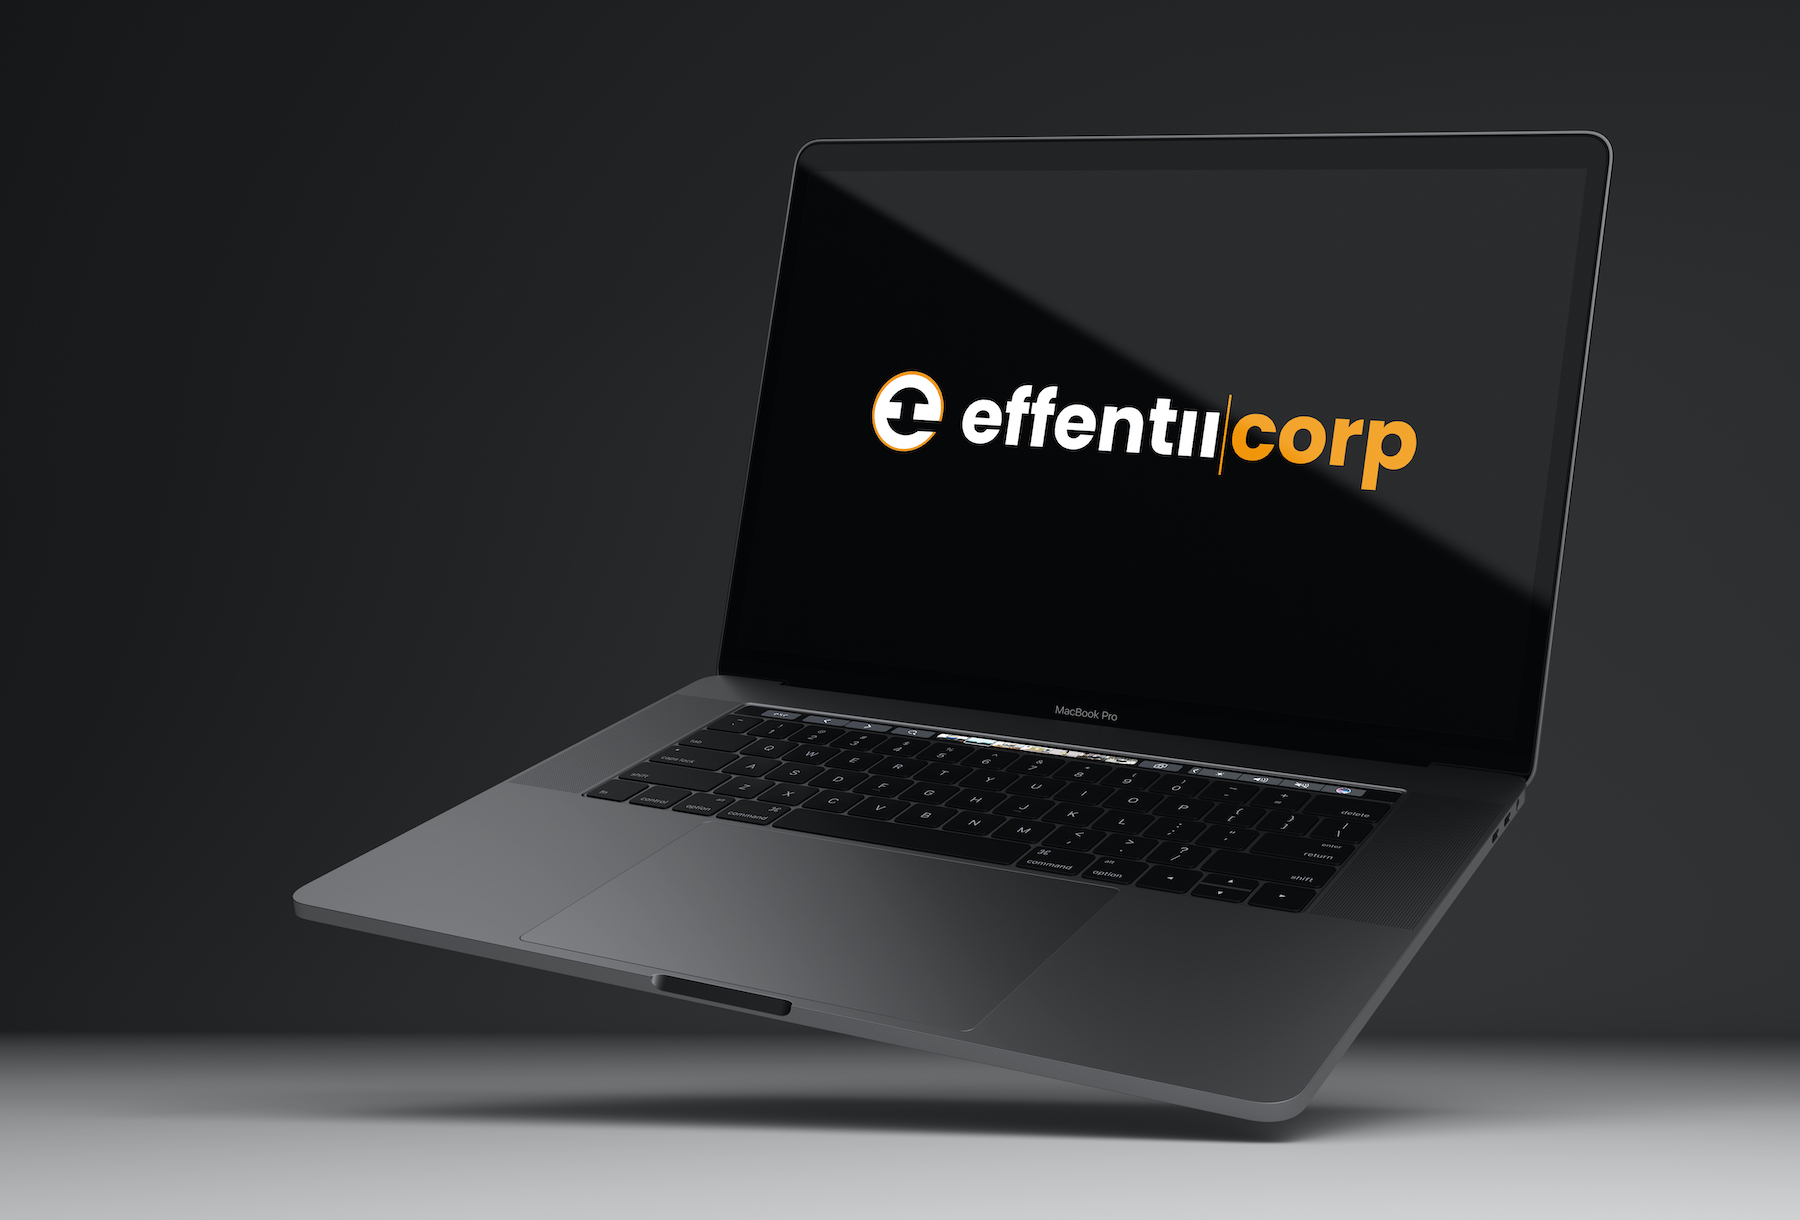 Effentiicorp - MacBook Space Grey